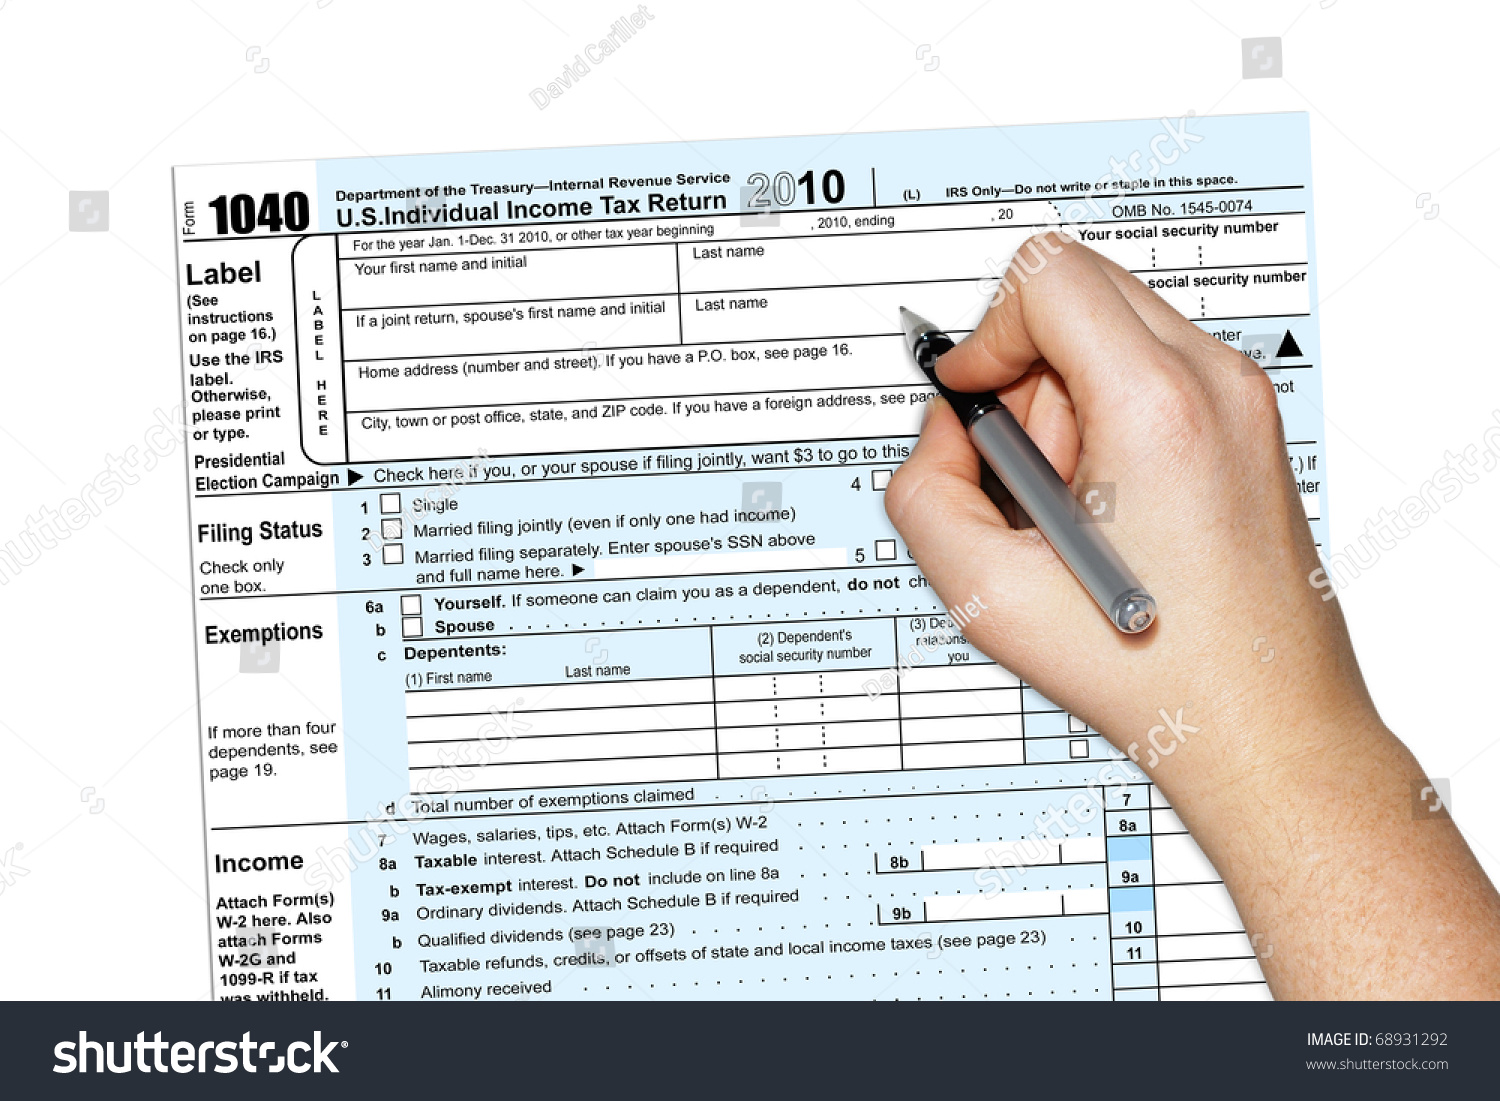 Preparing fill out 1040 tax form stock photo 68931292 shutterstock preparing to fill out a 1040 tax form for year 2010 falaconquin